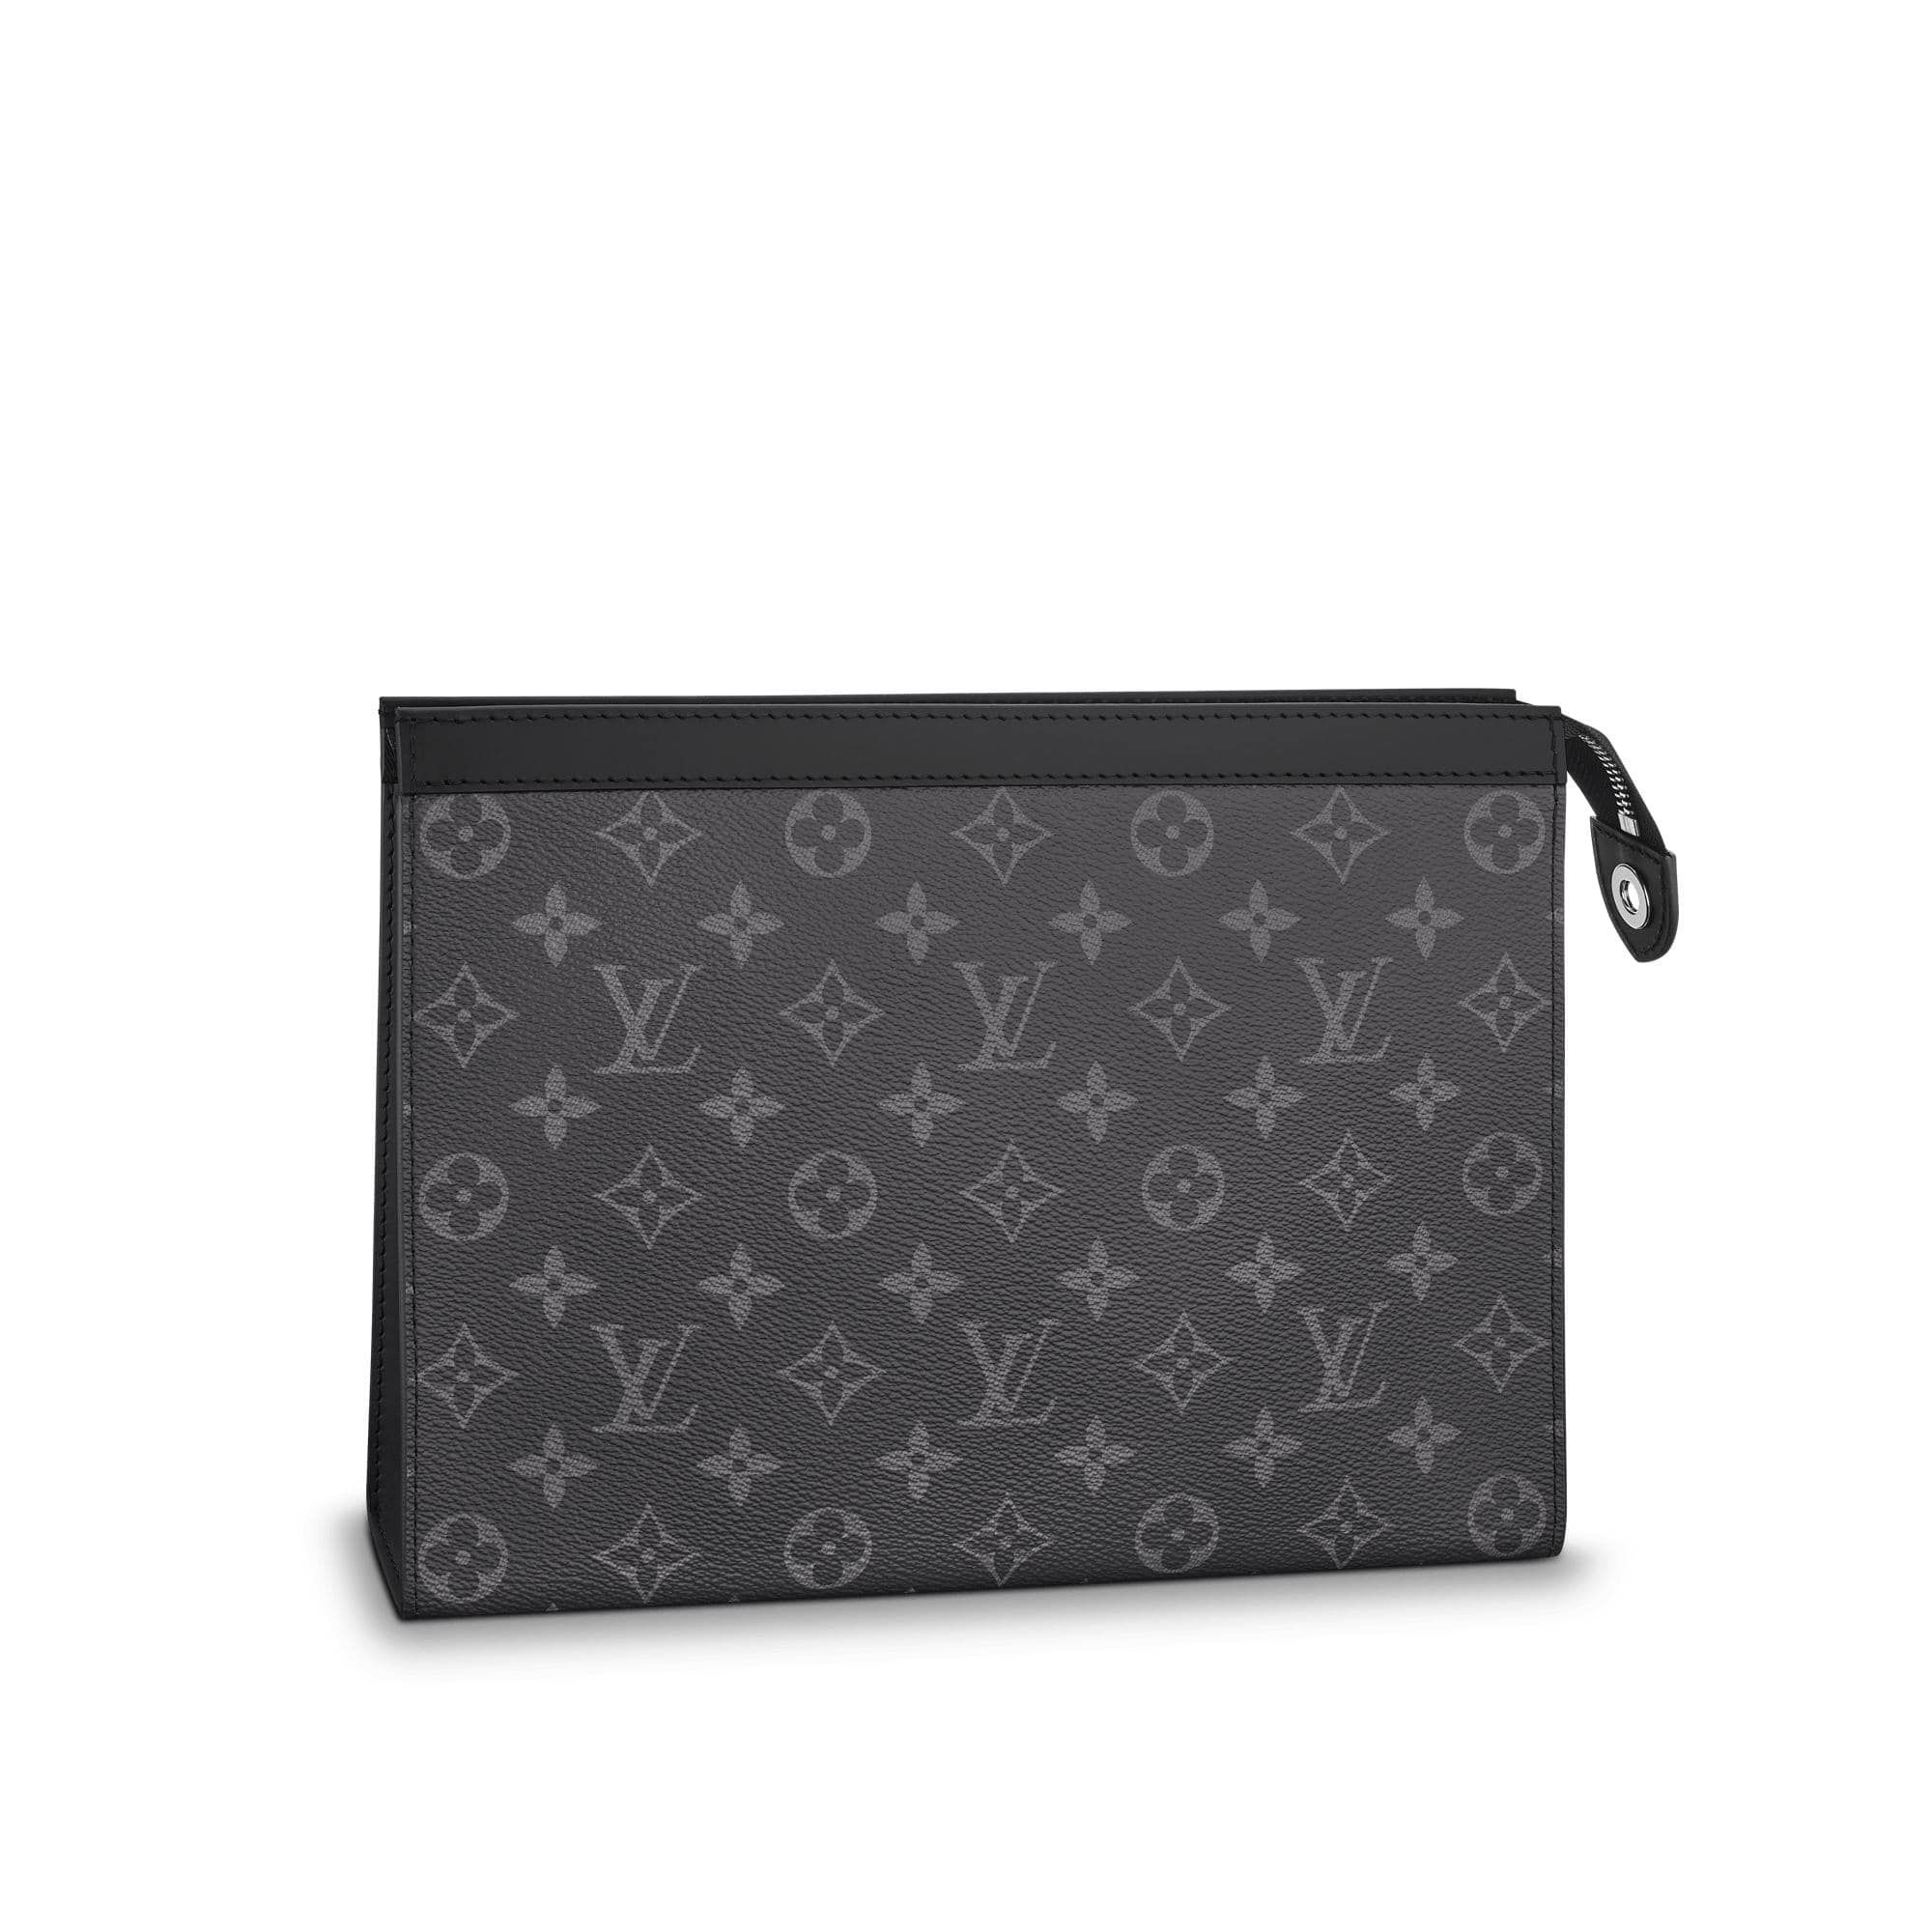 7f4515c175c Pochette Voyage MM in 2019 | My Style is Ridiculous | Louis vuitton ...